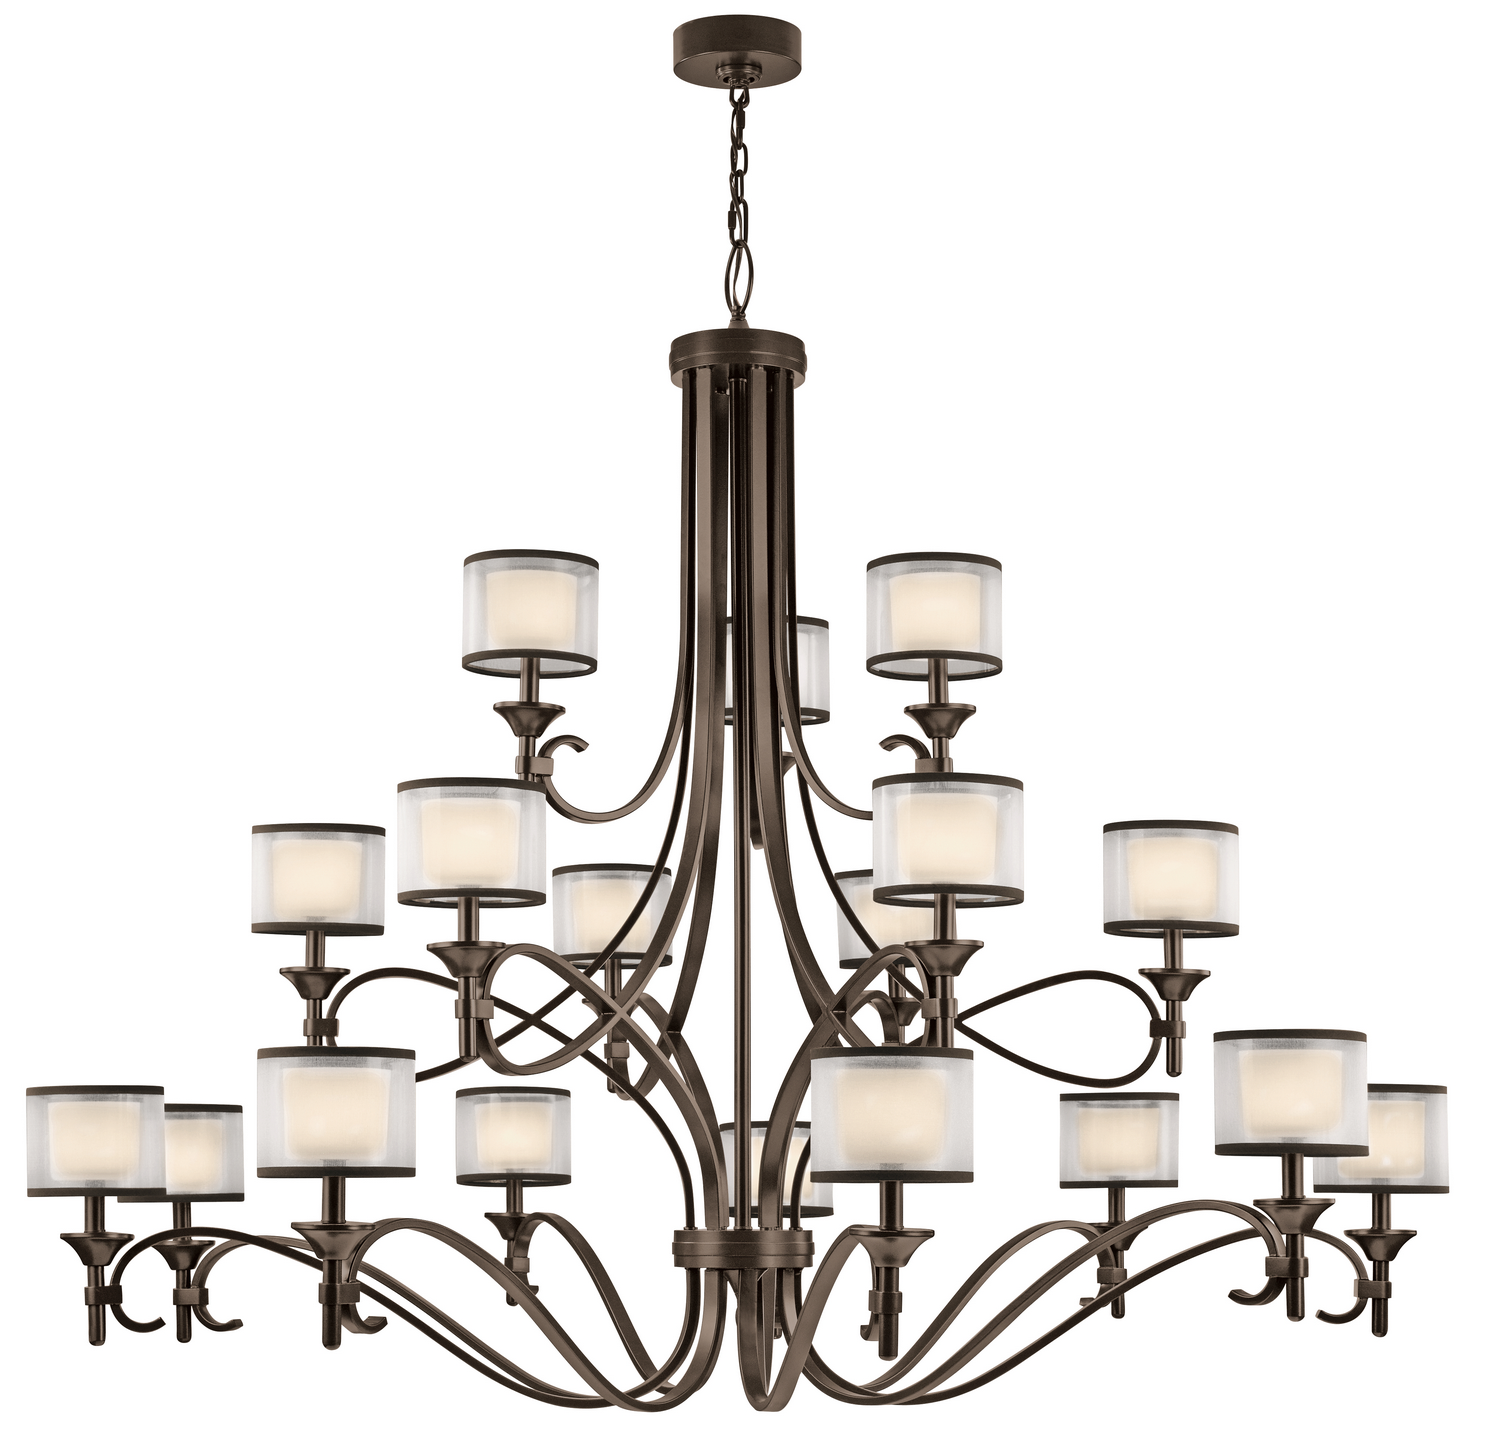 18 Light Chandelier from the Lacey collection by Kichler 42396MIZ